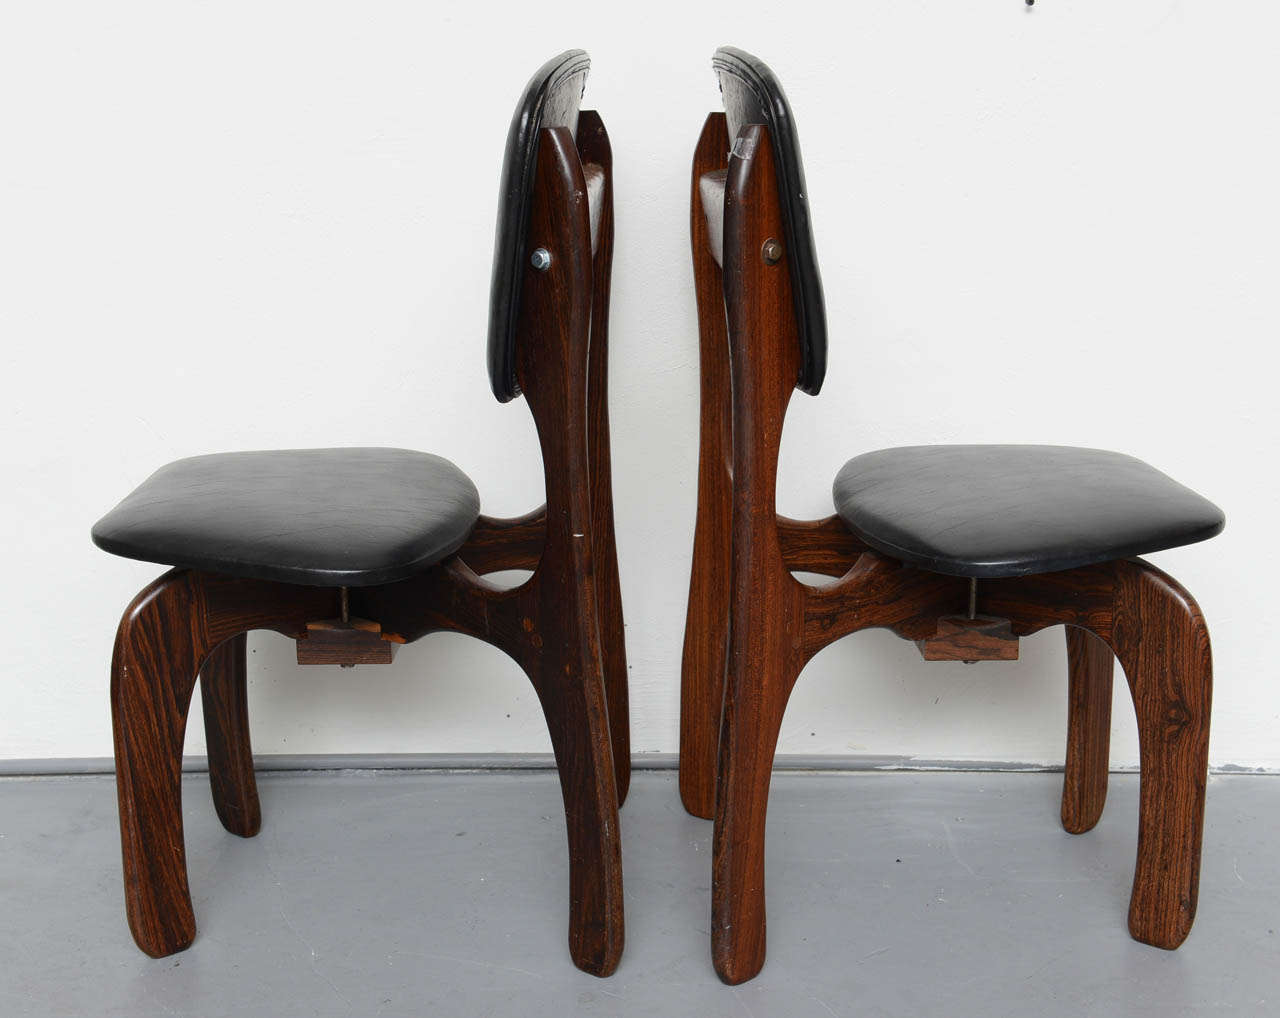 1970s Rosewood Chairs by Don Shoemaker, Mexico 5